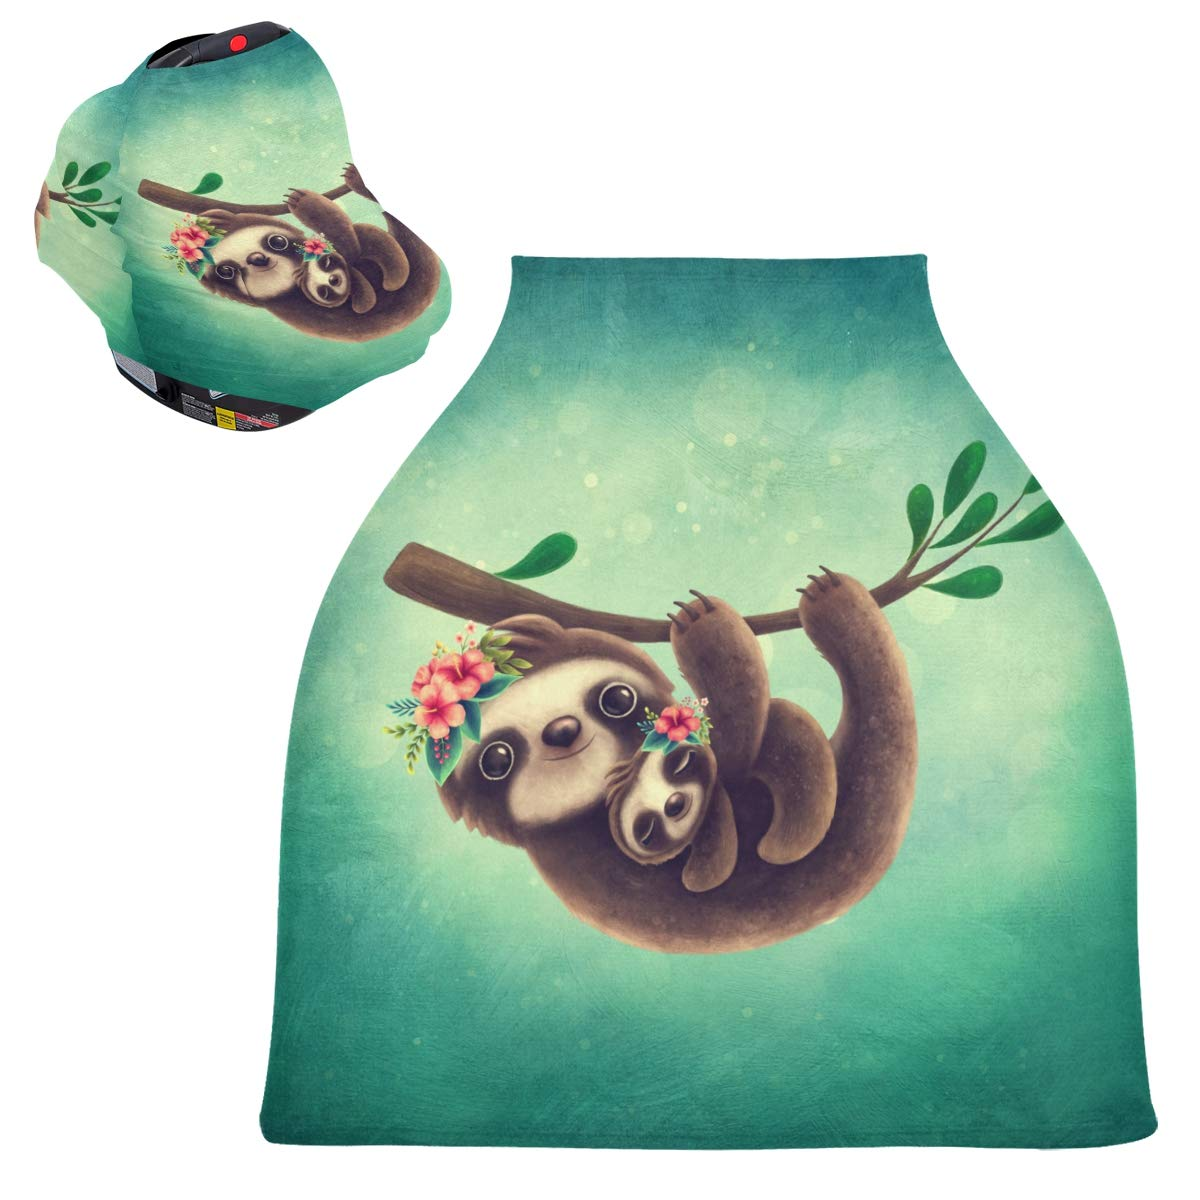 Stretchy Baby Car Seat Canopy - Sloth Mom Baby Infant Stroller Cover Multi Use Carseat Canopy Cover Nursing Cover for High Chair